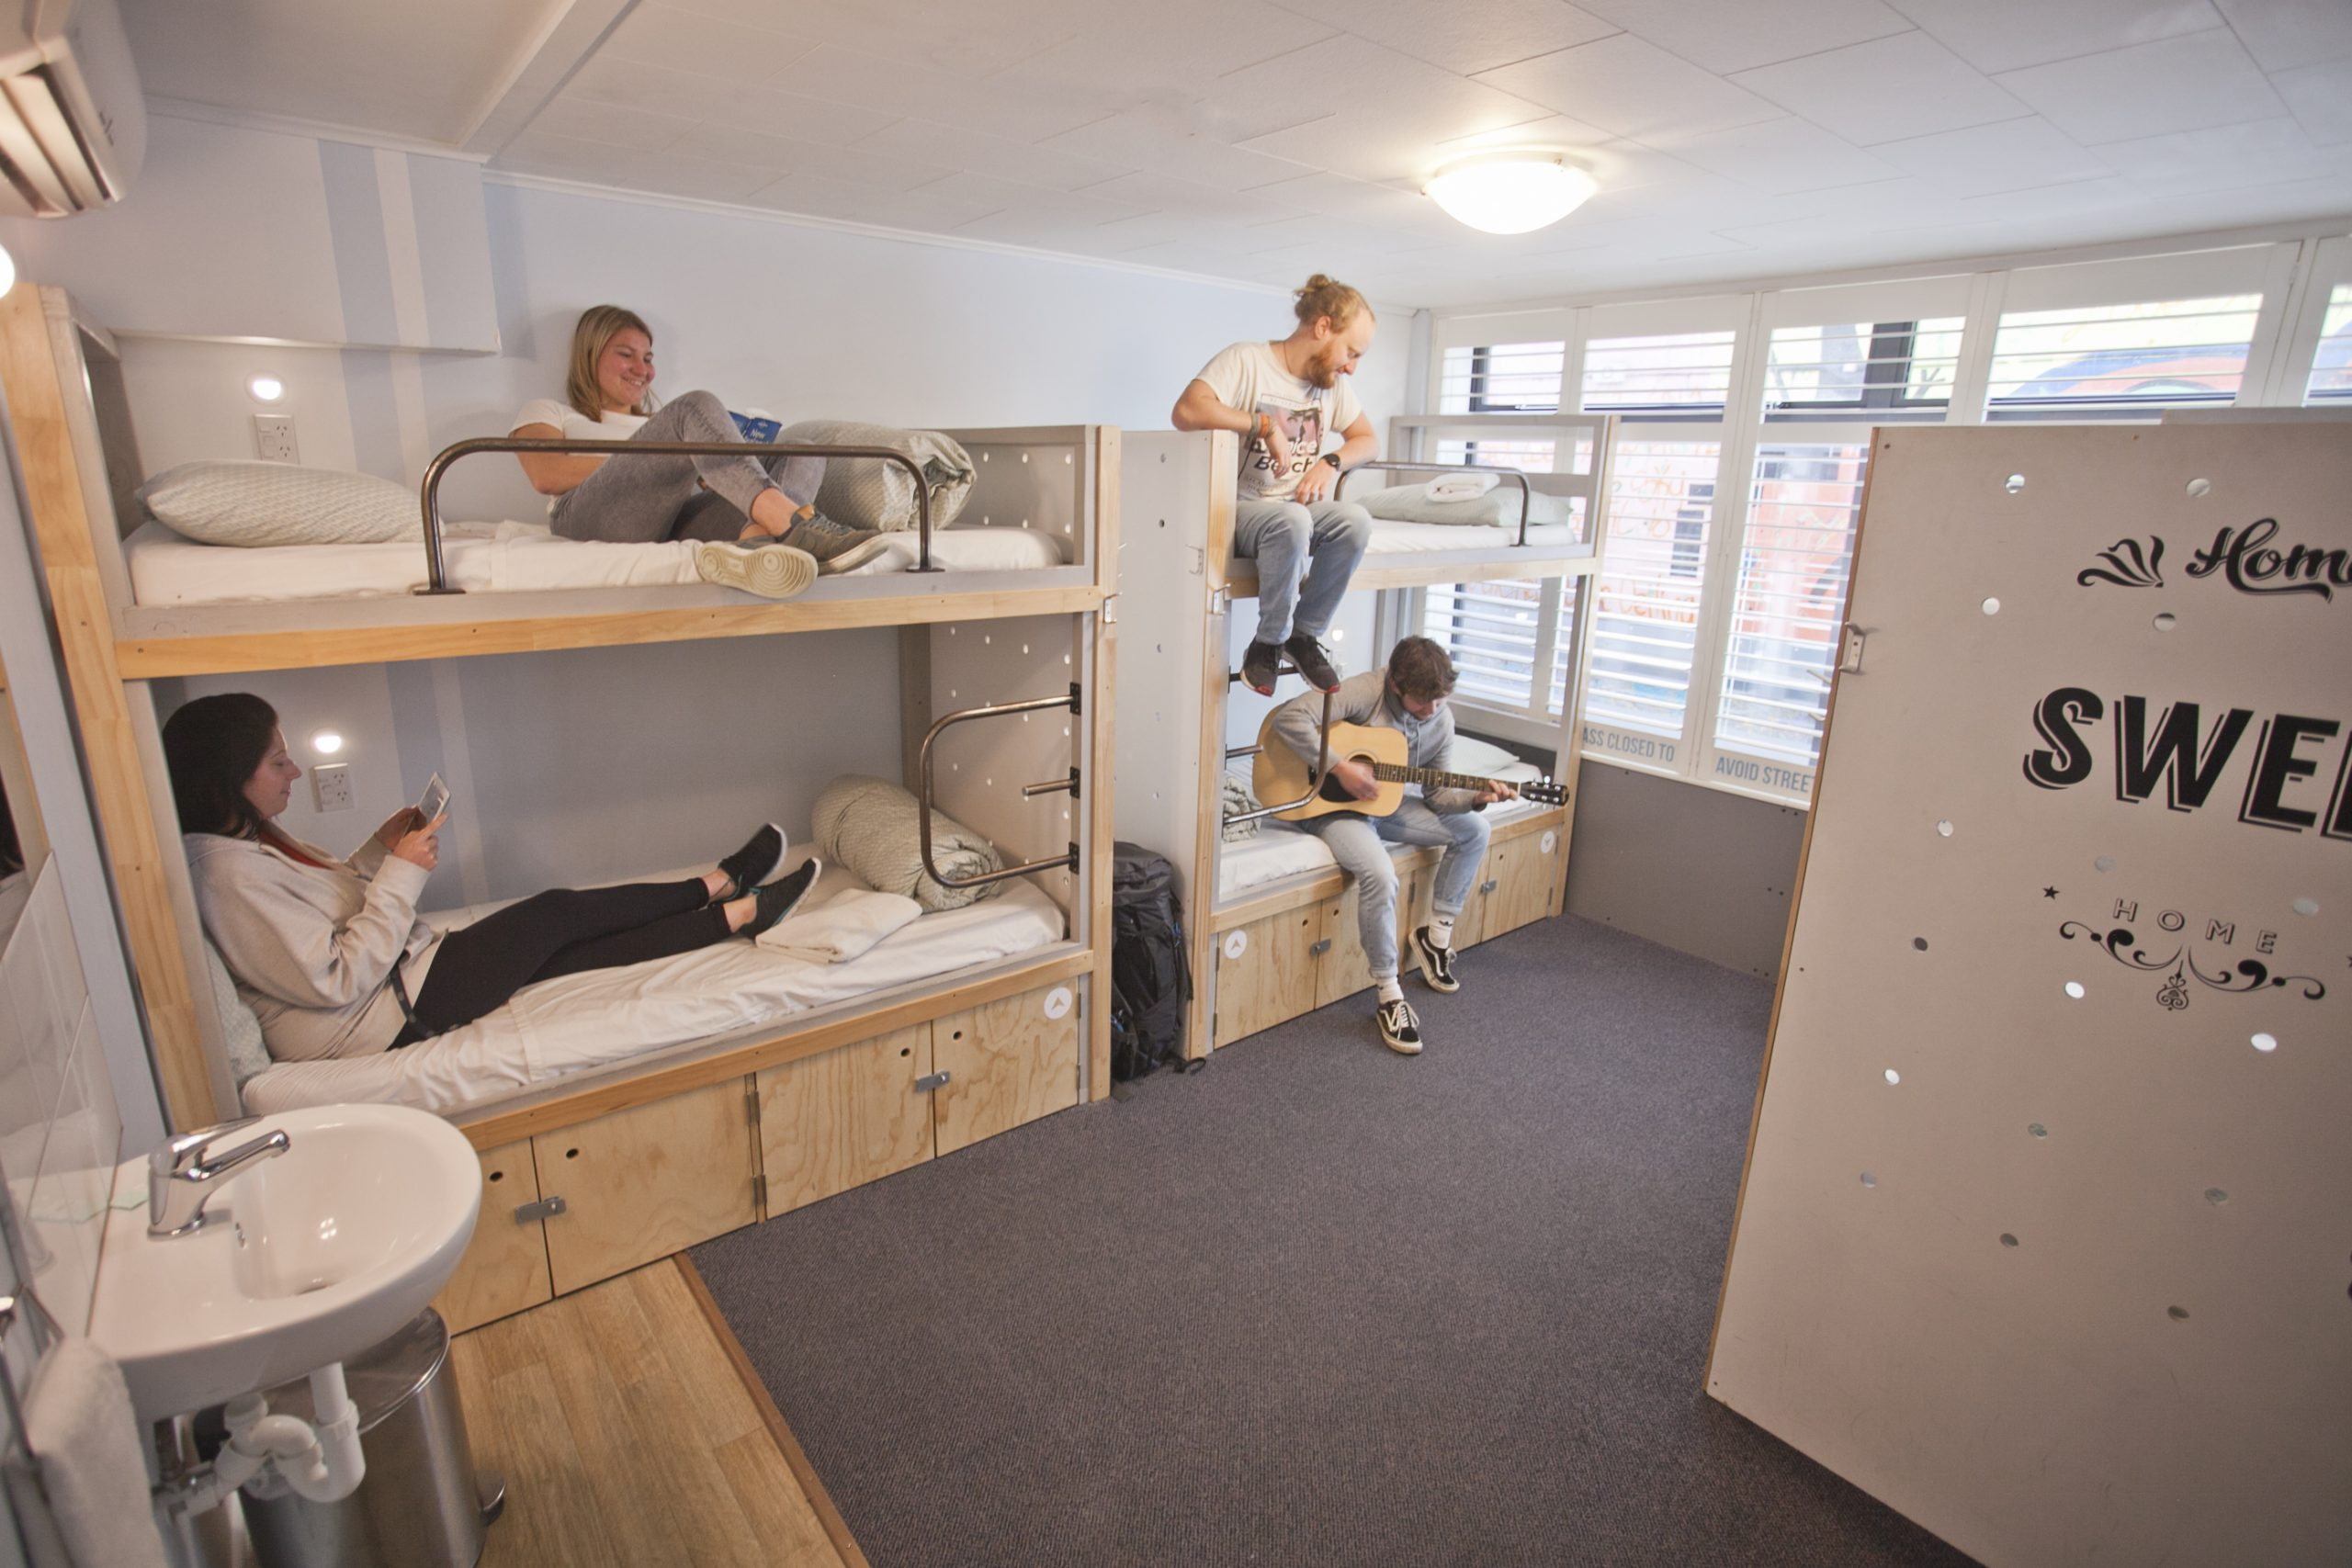 Absoloot Hostel bunks